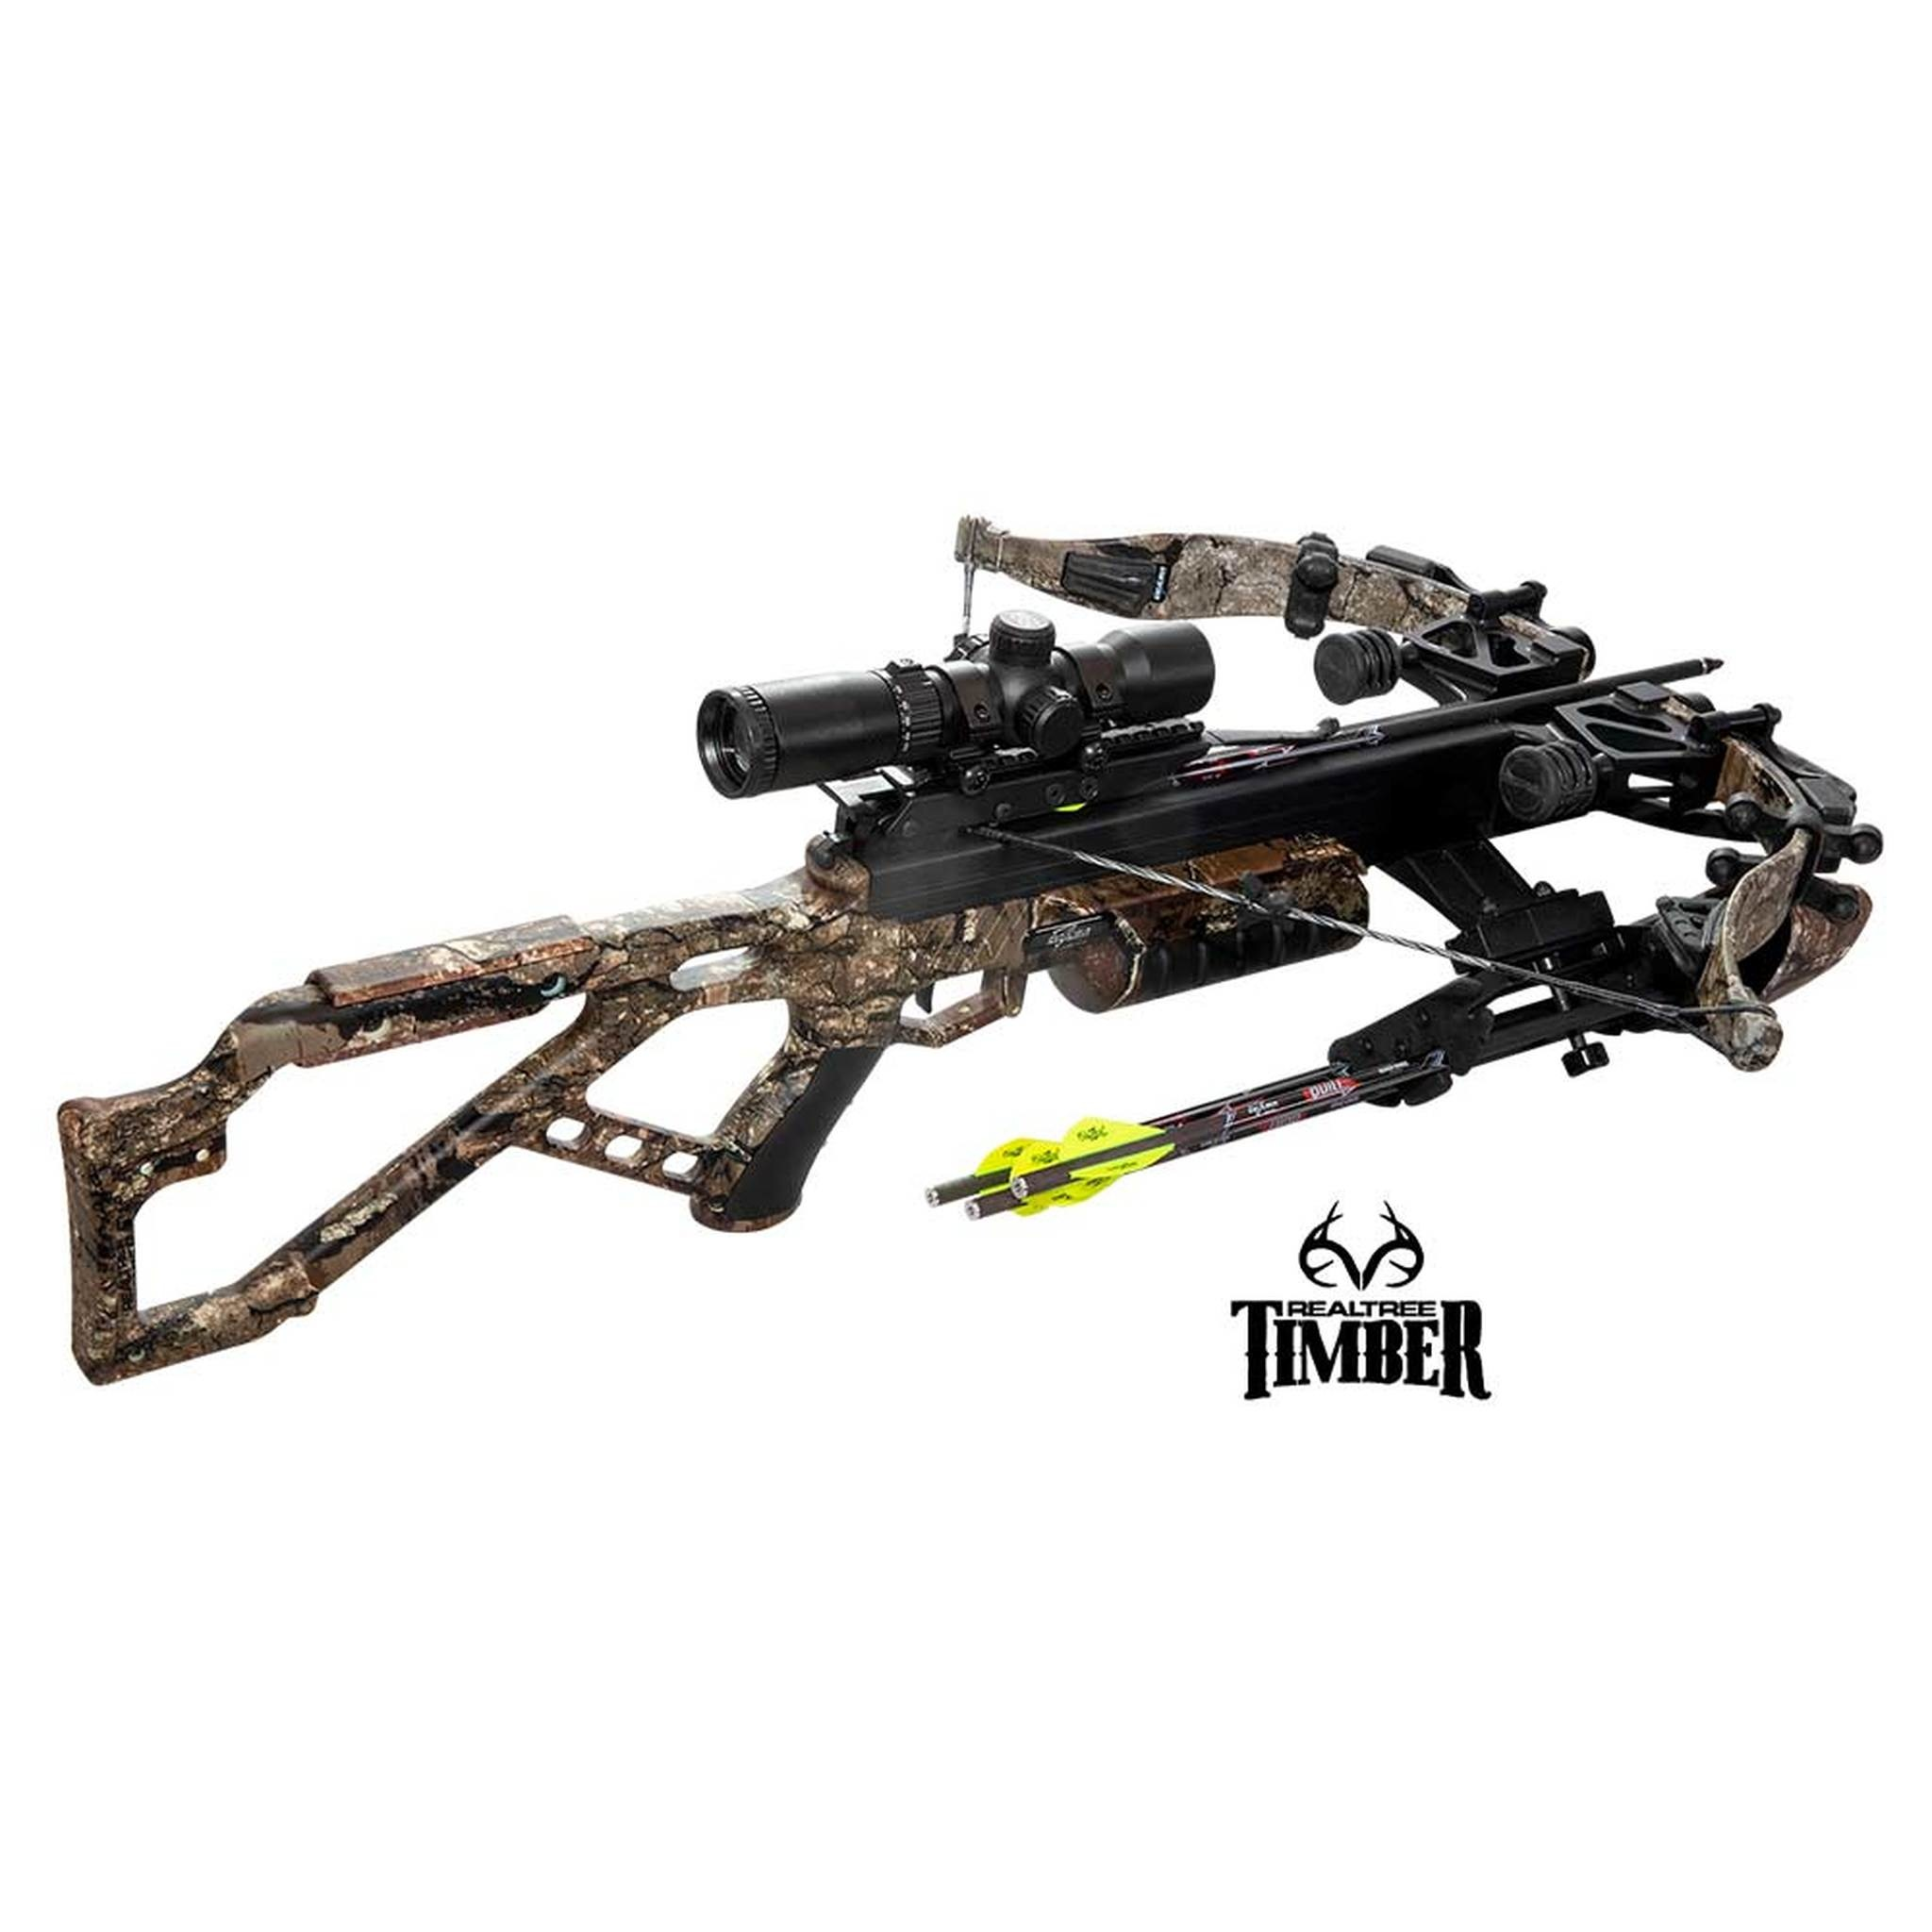 Excalibur Excalibur Micro 340TD RT Timber Camo Package